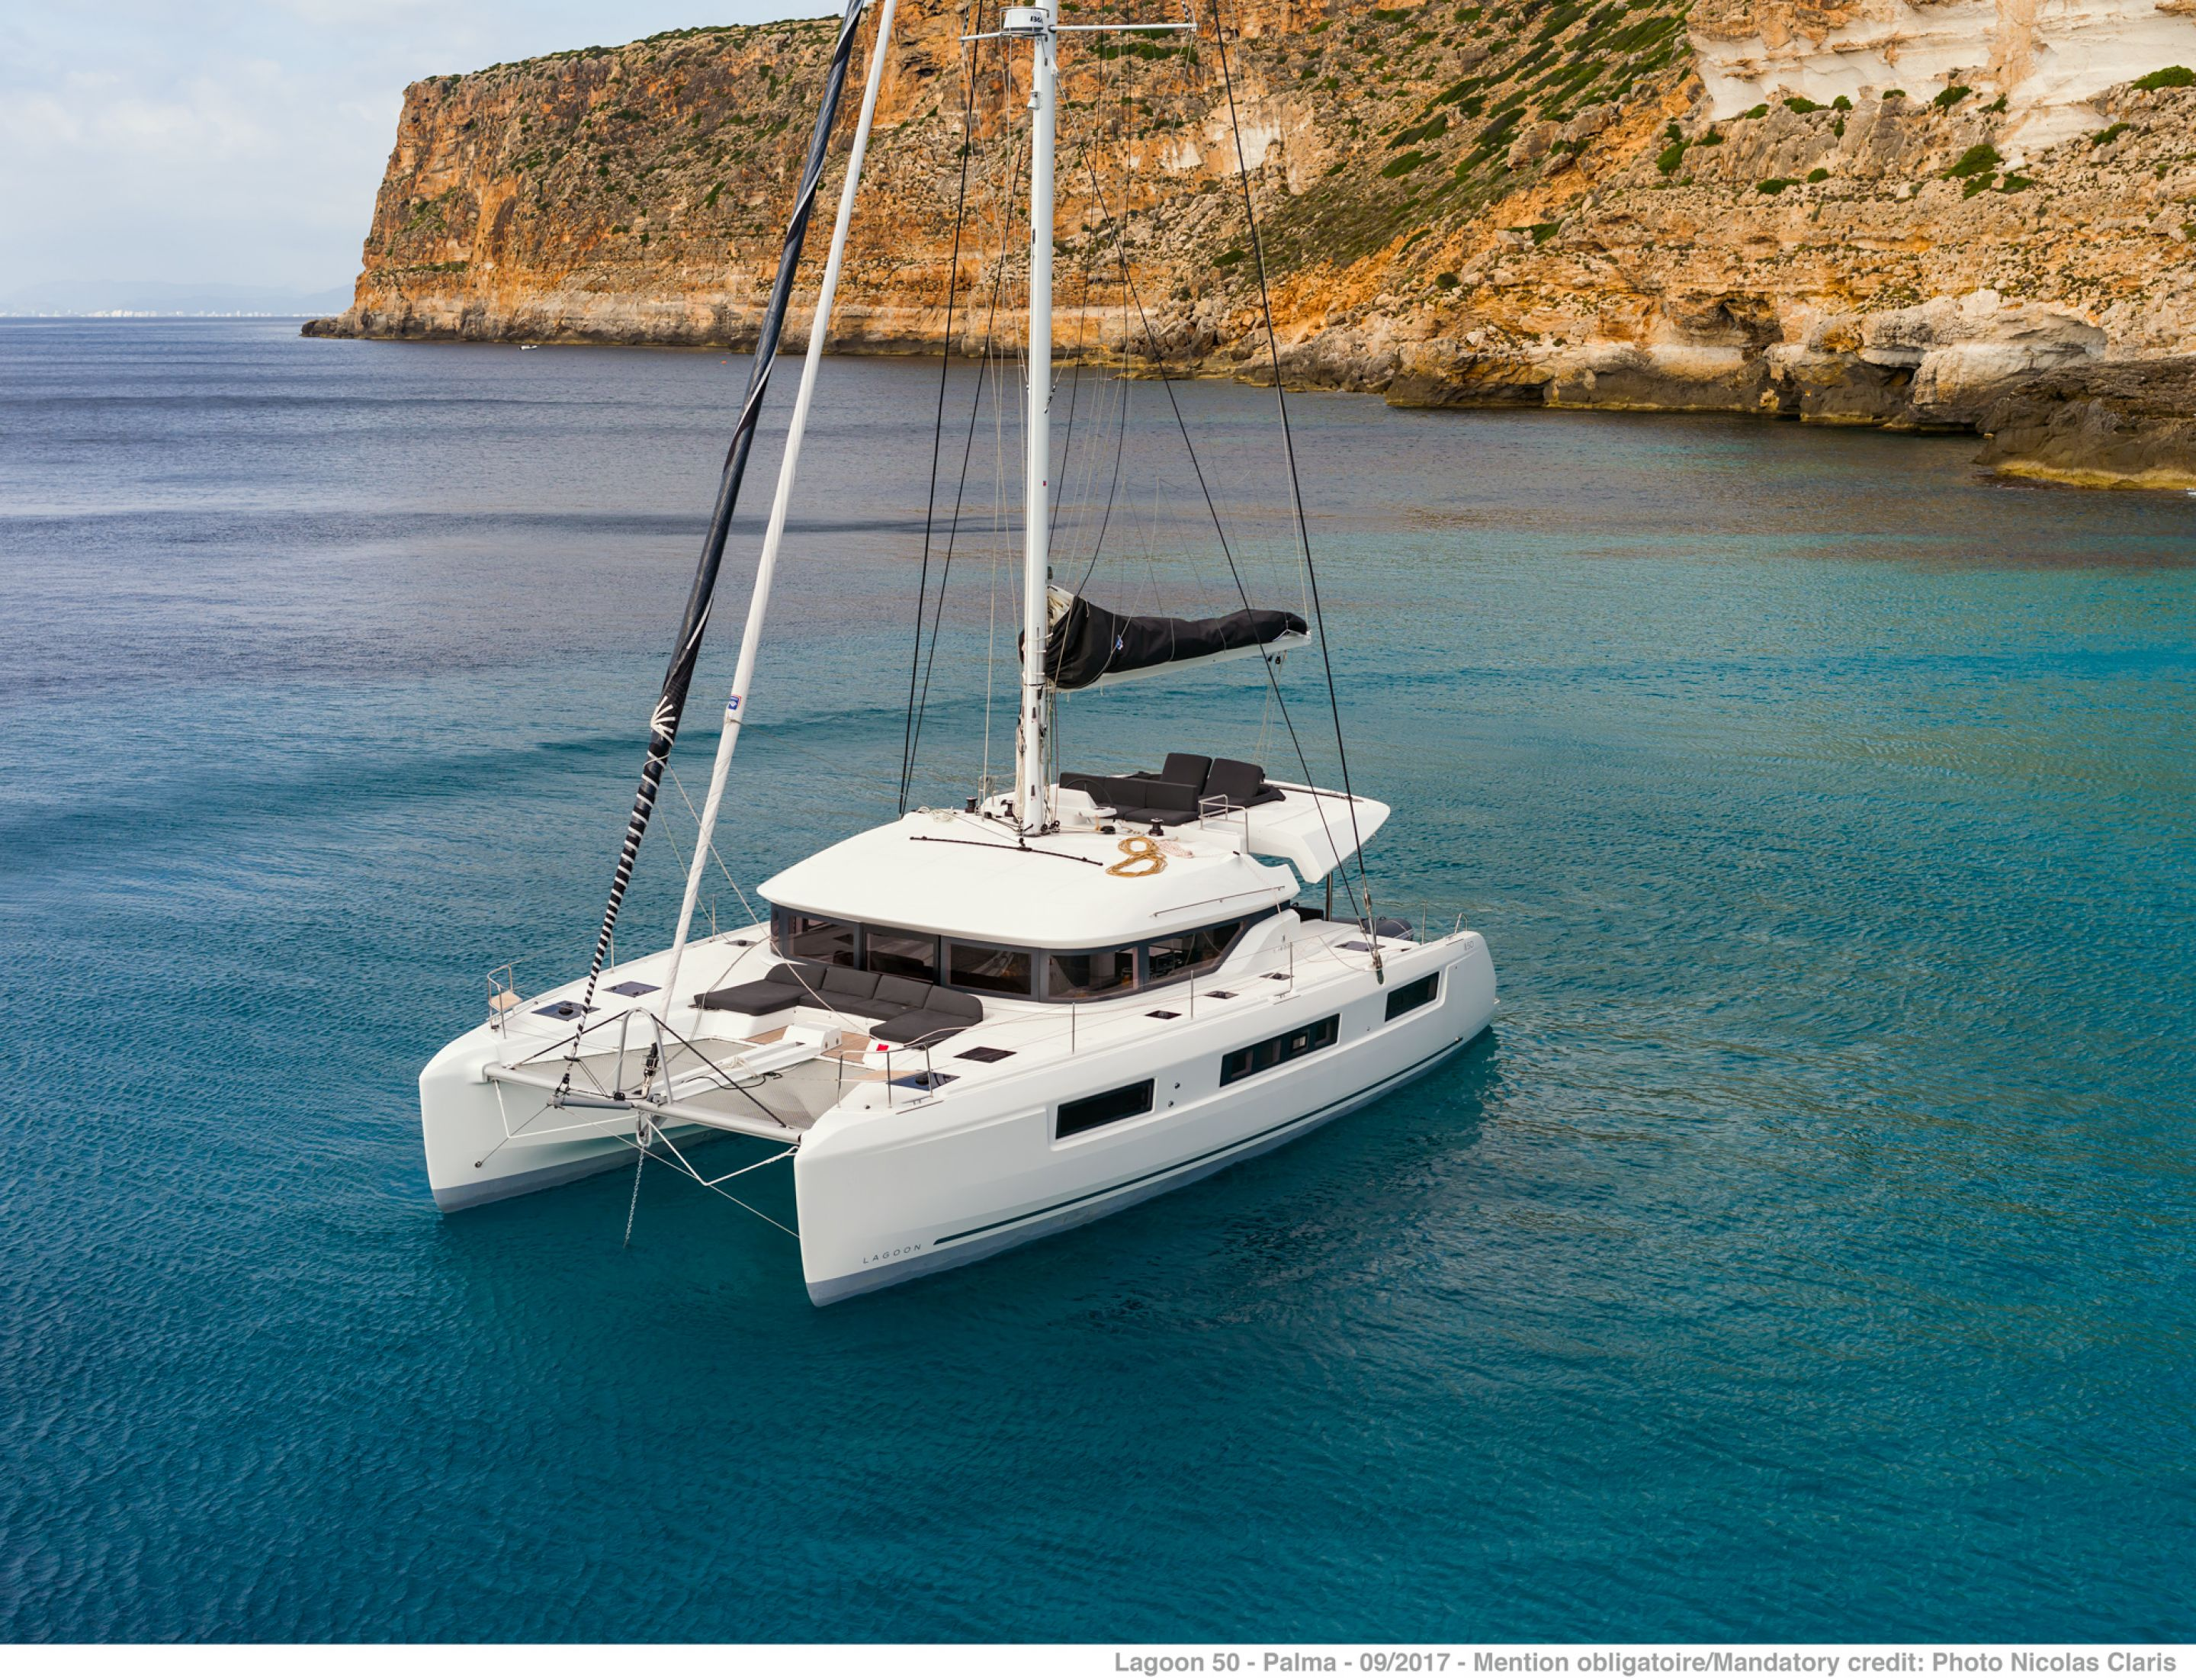 Lagoon 50 Prestige - Catamaran for Charter in Greece